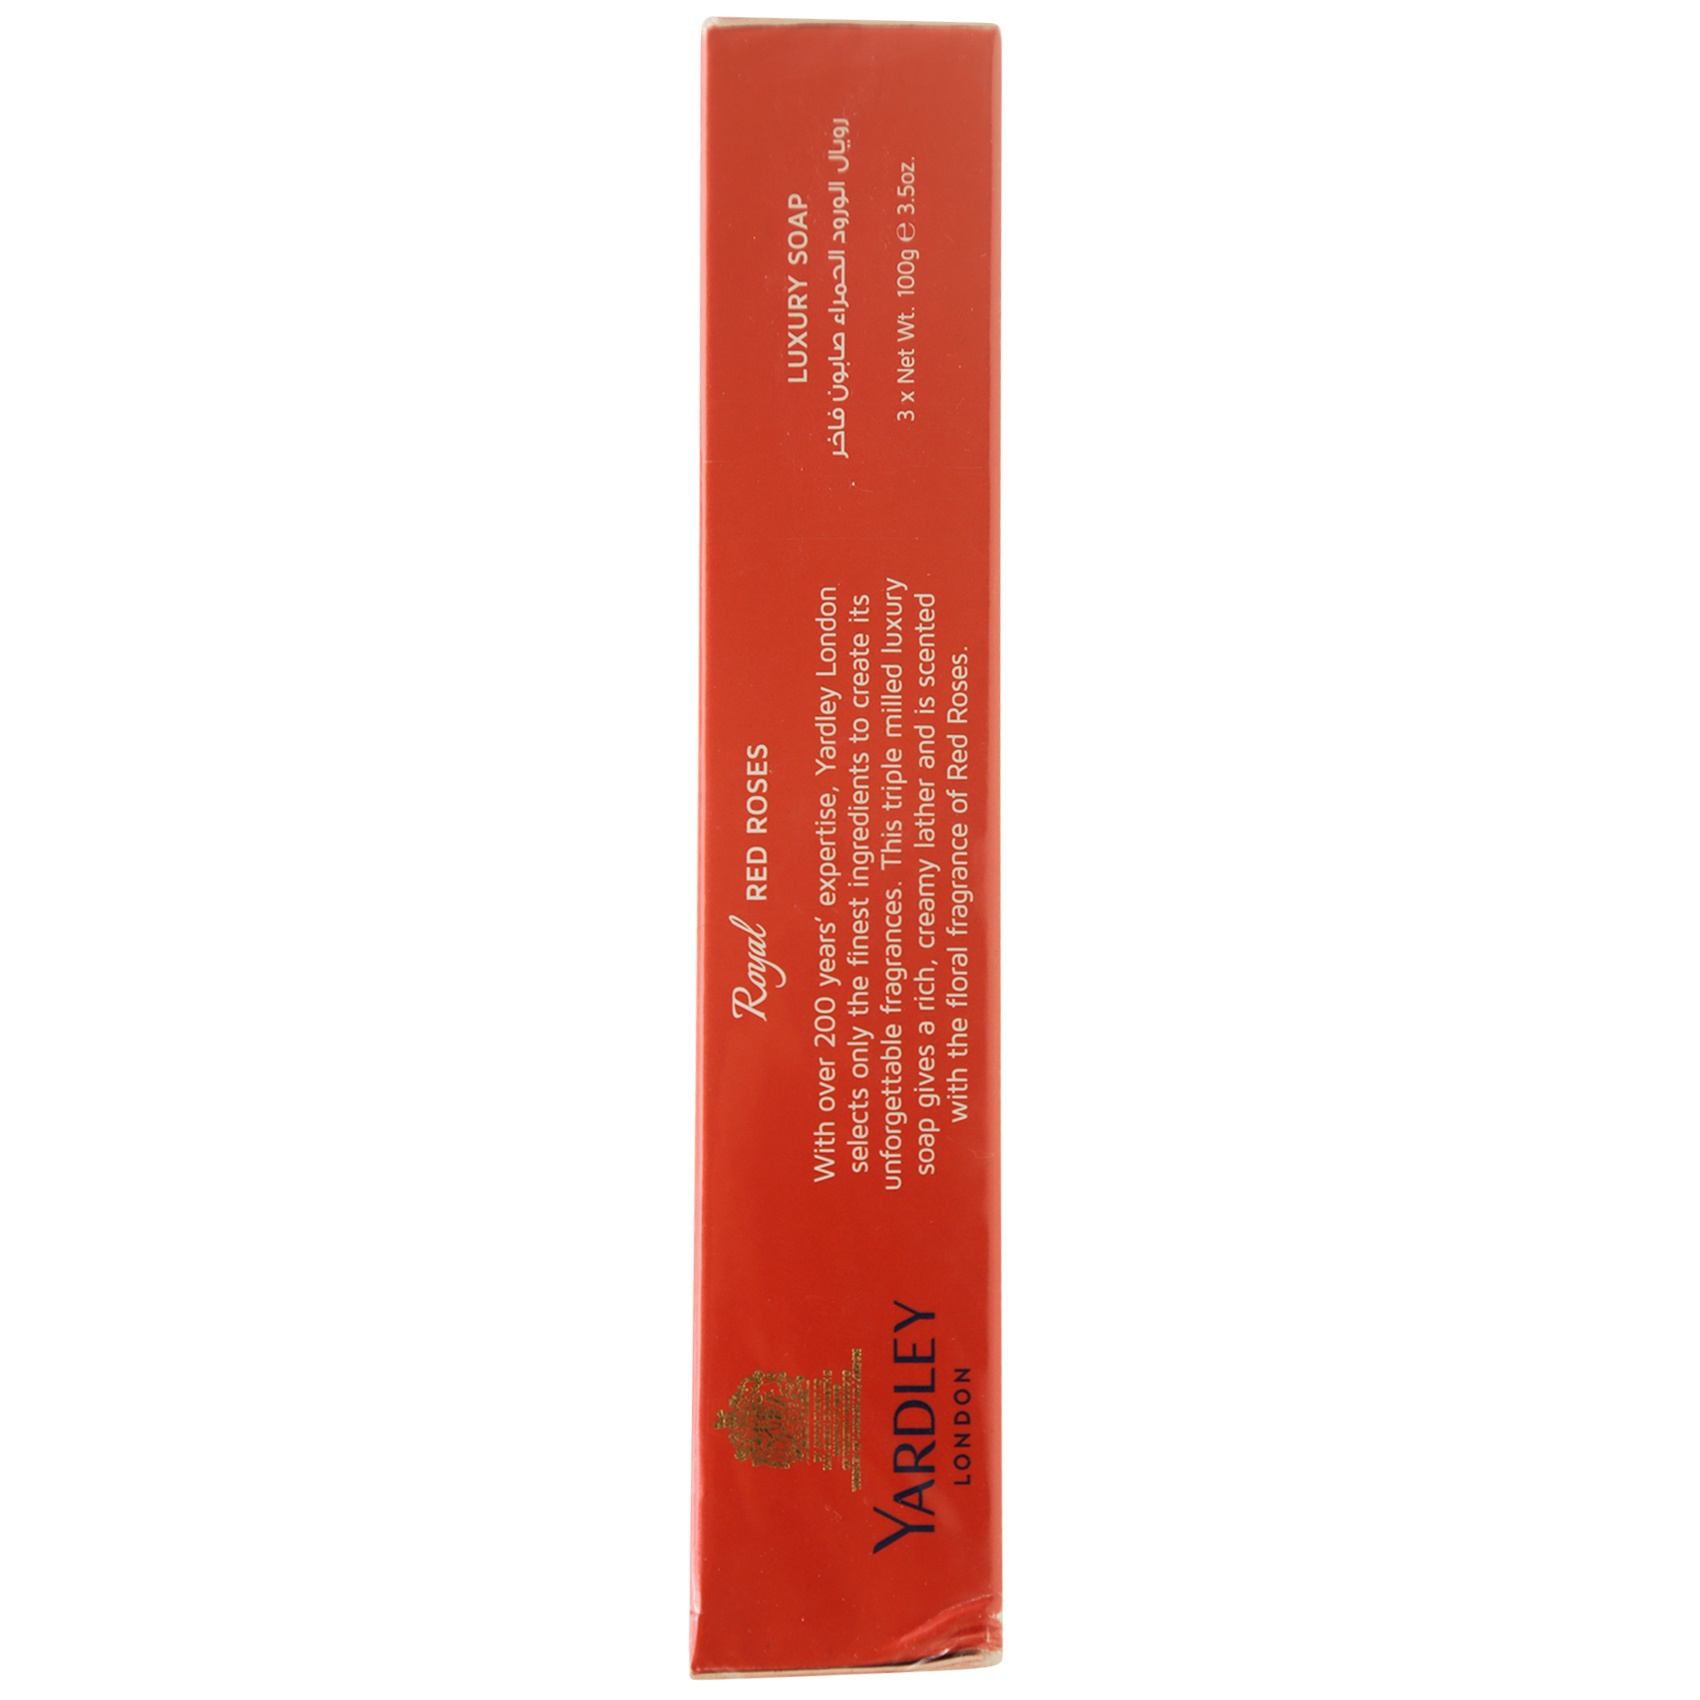 YARDLEY SOAP RED ROSE 100GMX3